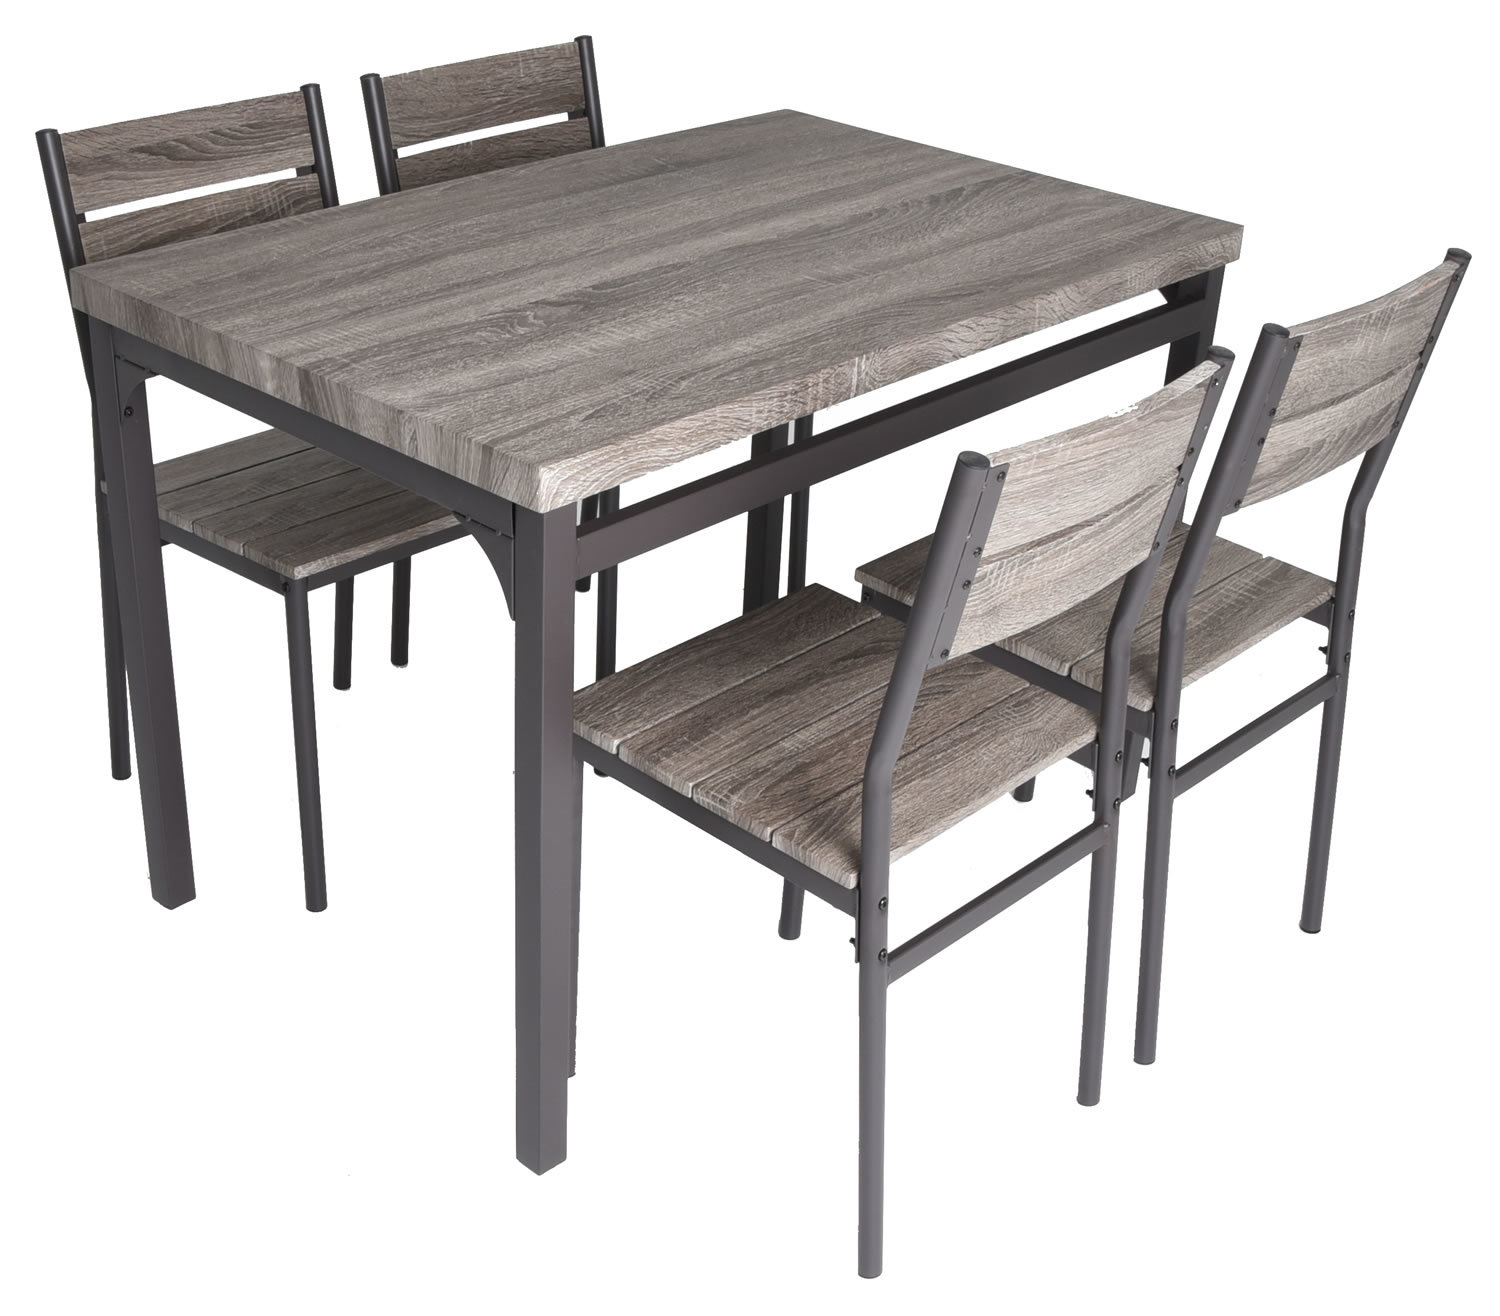 Inspiration about Popular Emmeline 5 Piece Breakfast Nook Dining Sets With Regard To Gracie Oaks Emmeline 5 Piece Breakfast Nook Dining Set & Reviews (#1 of 20)